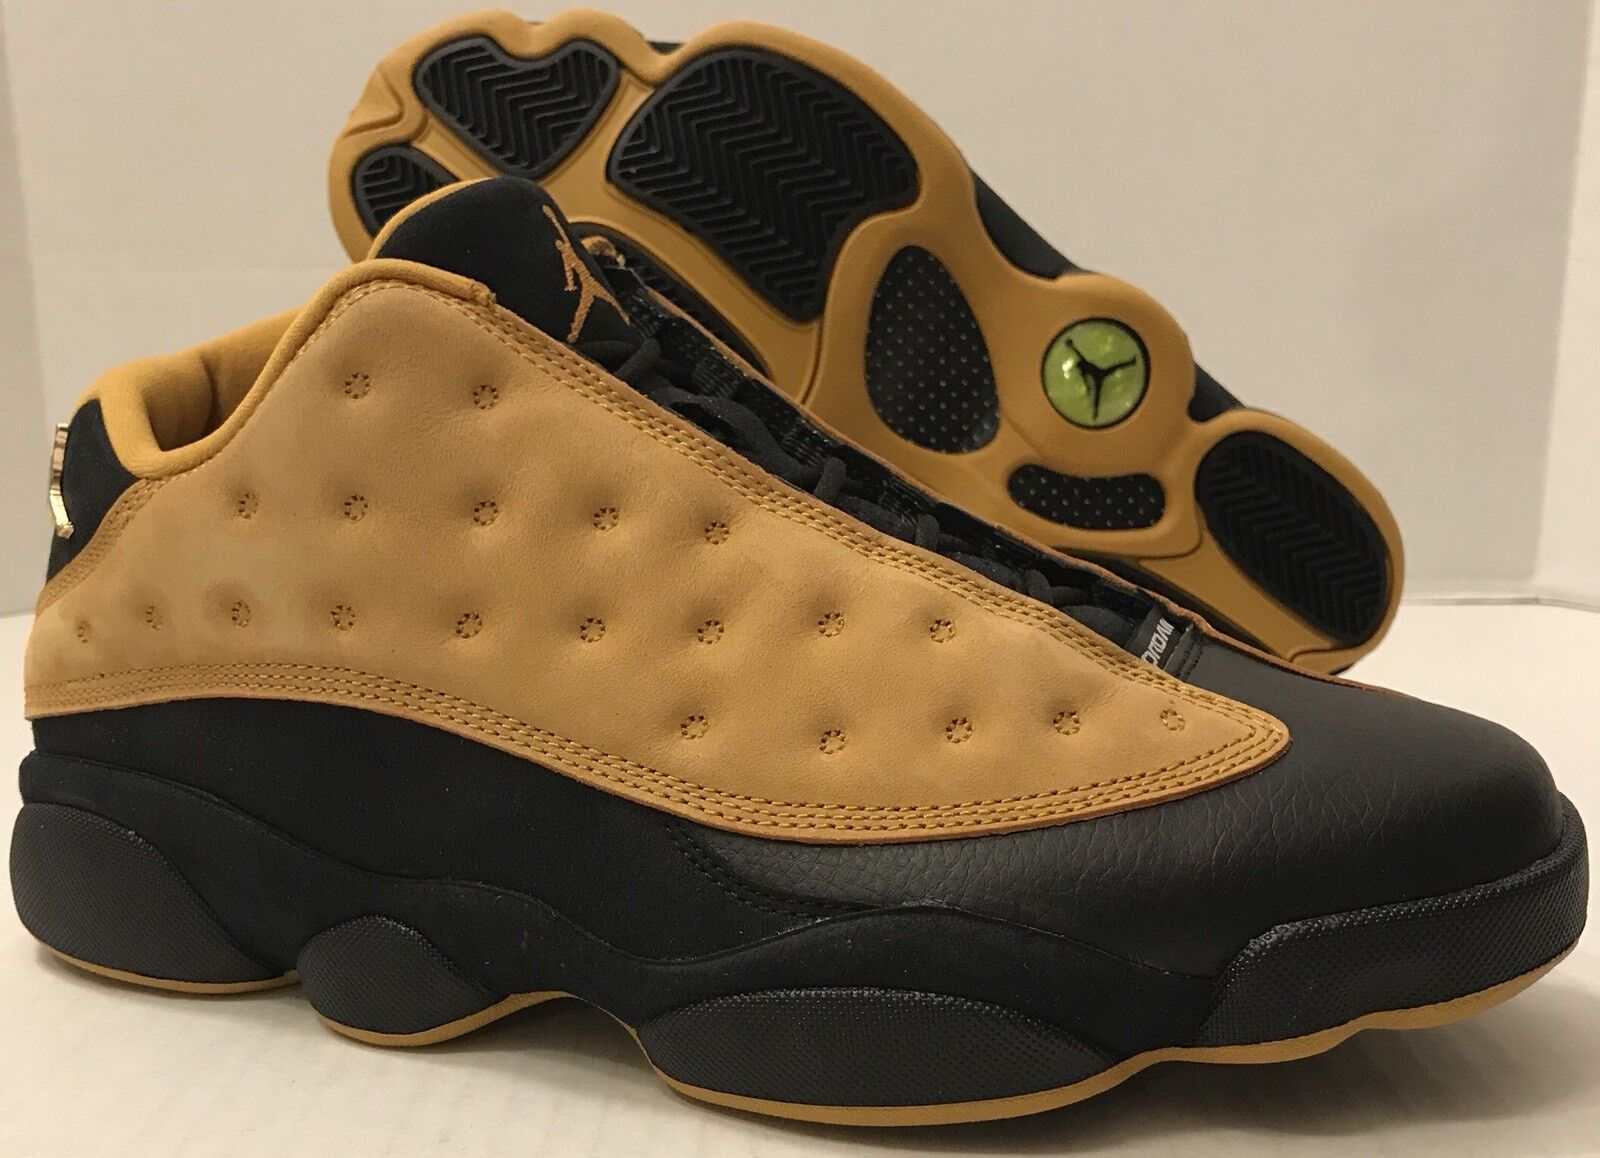 save off 7bc4f 784a5 NIKE AIR JORDAN 13 RETRO LOW 310810-022 Black Chutney (MEN S 10)